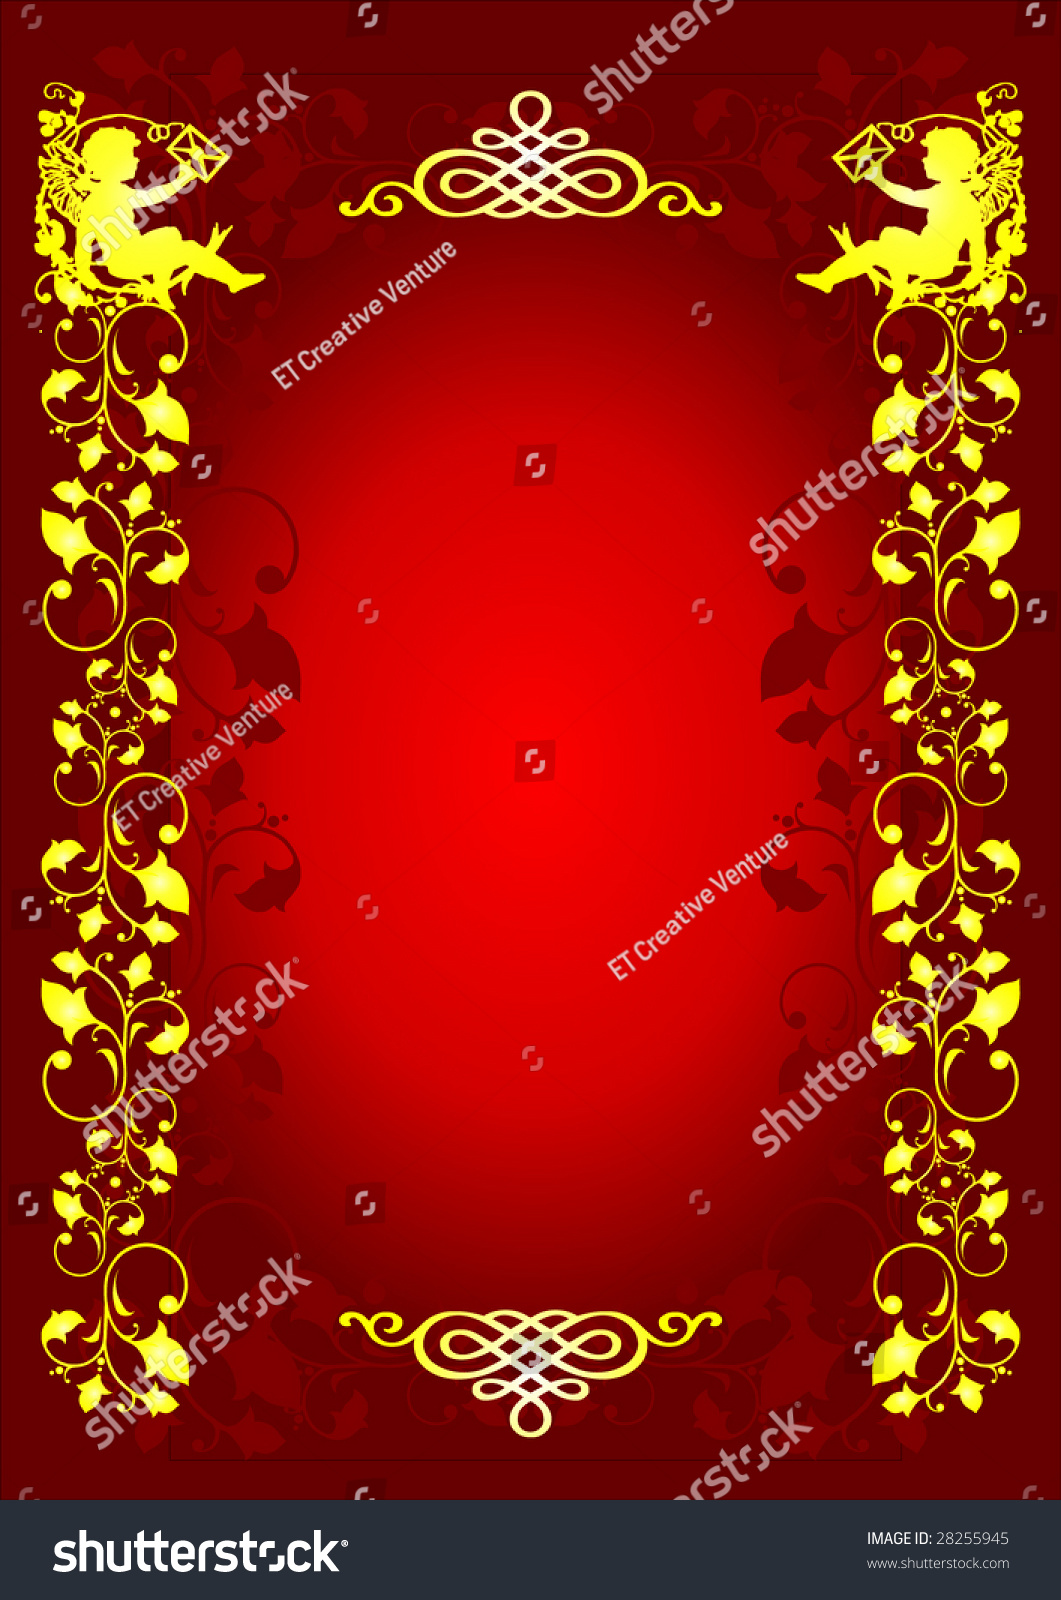 Abstract Design Letter Background Stock Vector Illustration 28255945 Shutterstock